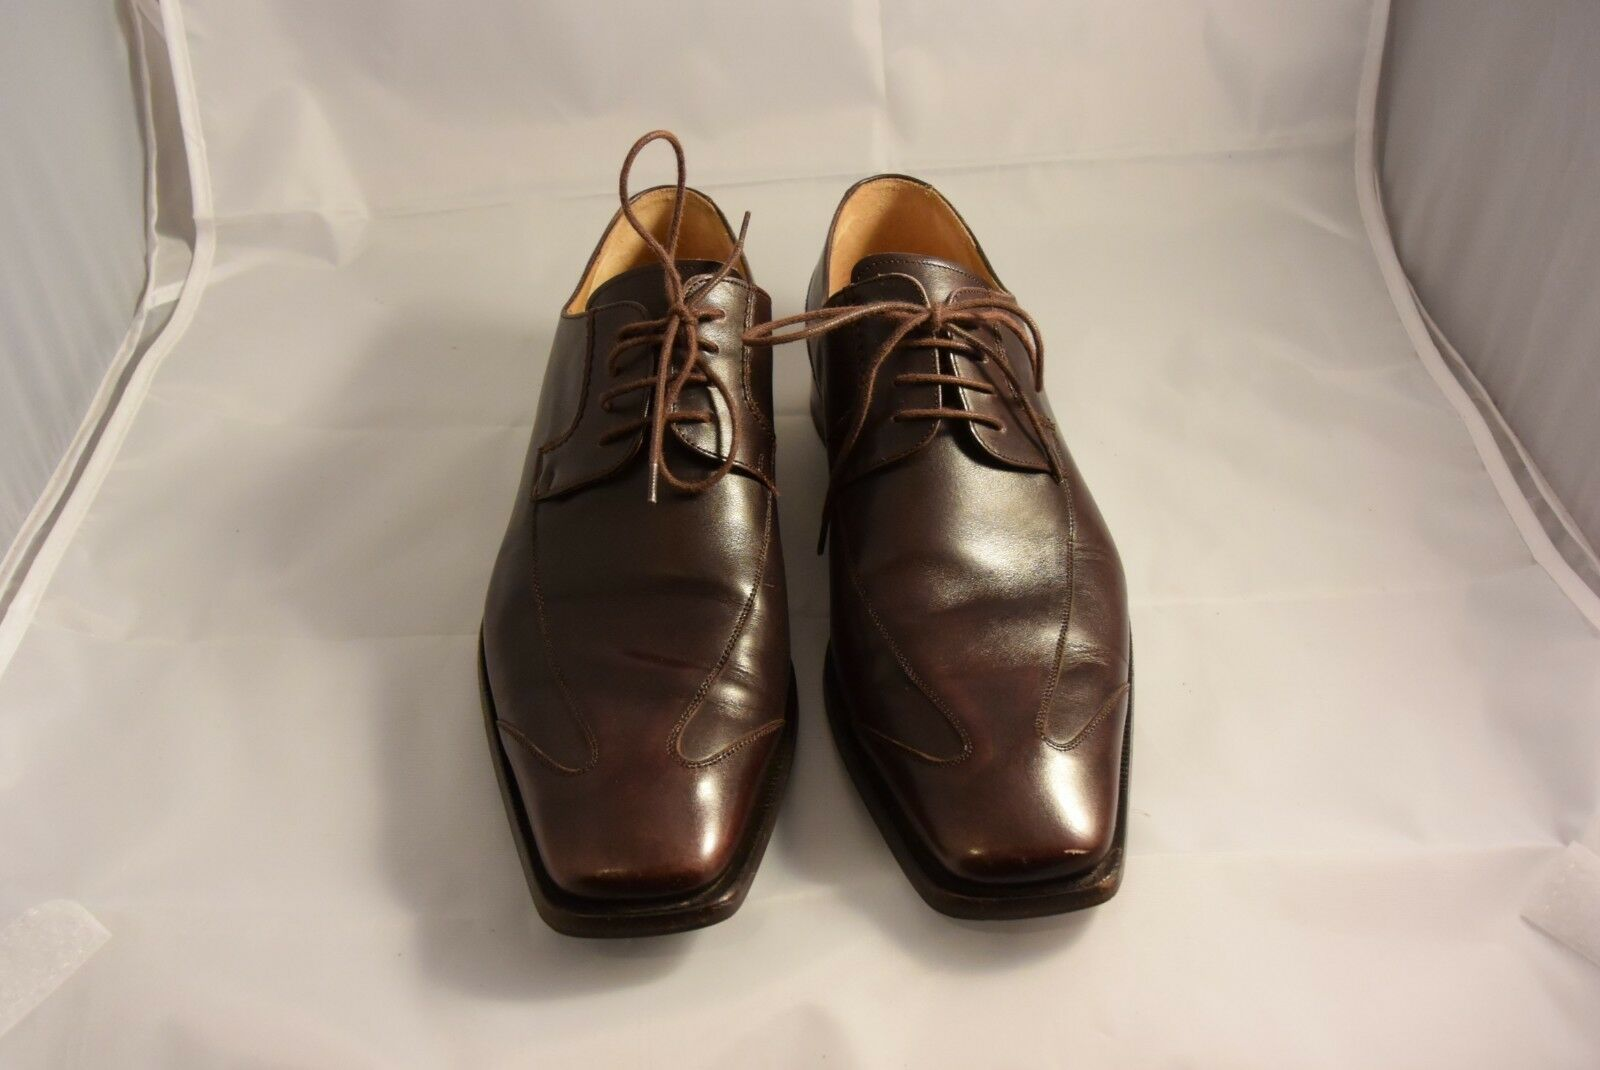 Mezlan Brown Leather Loafer shoes Mens 10M  Brynner  Made in Spain